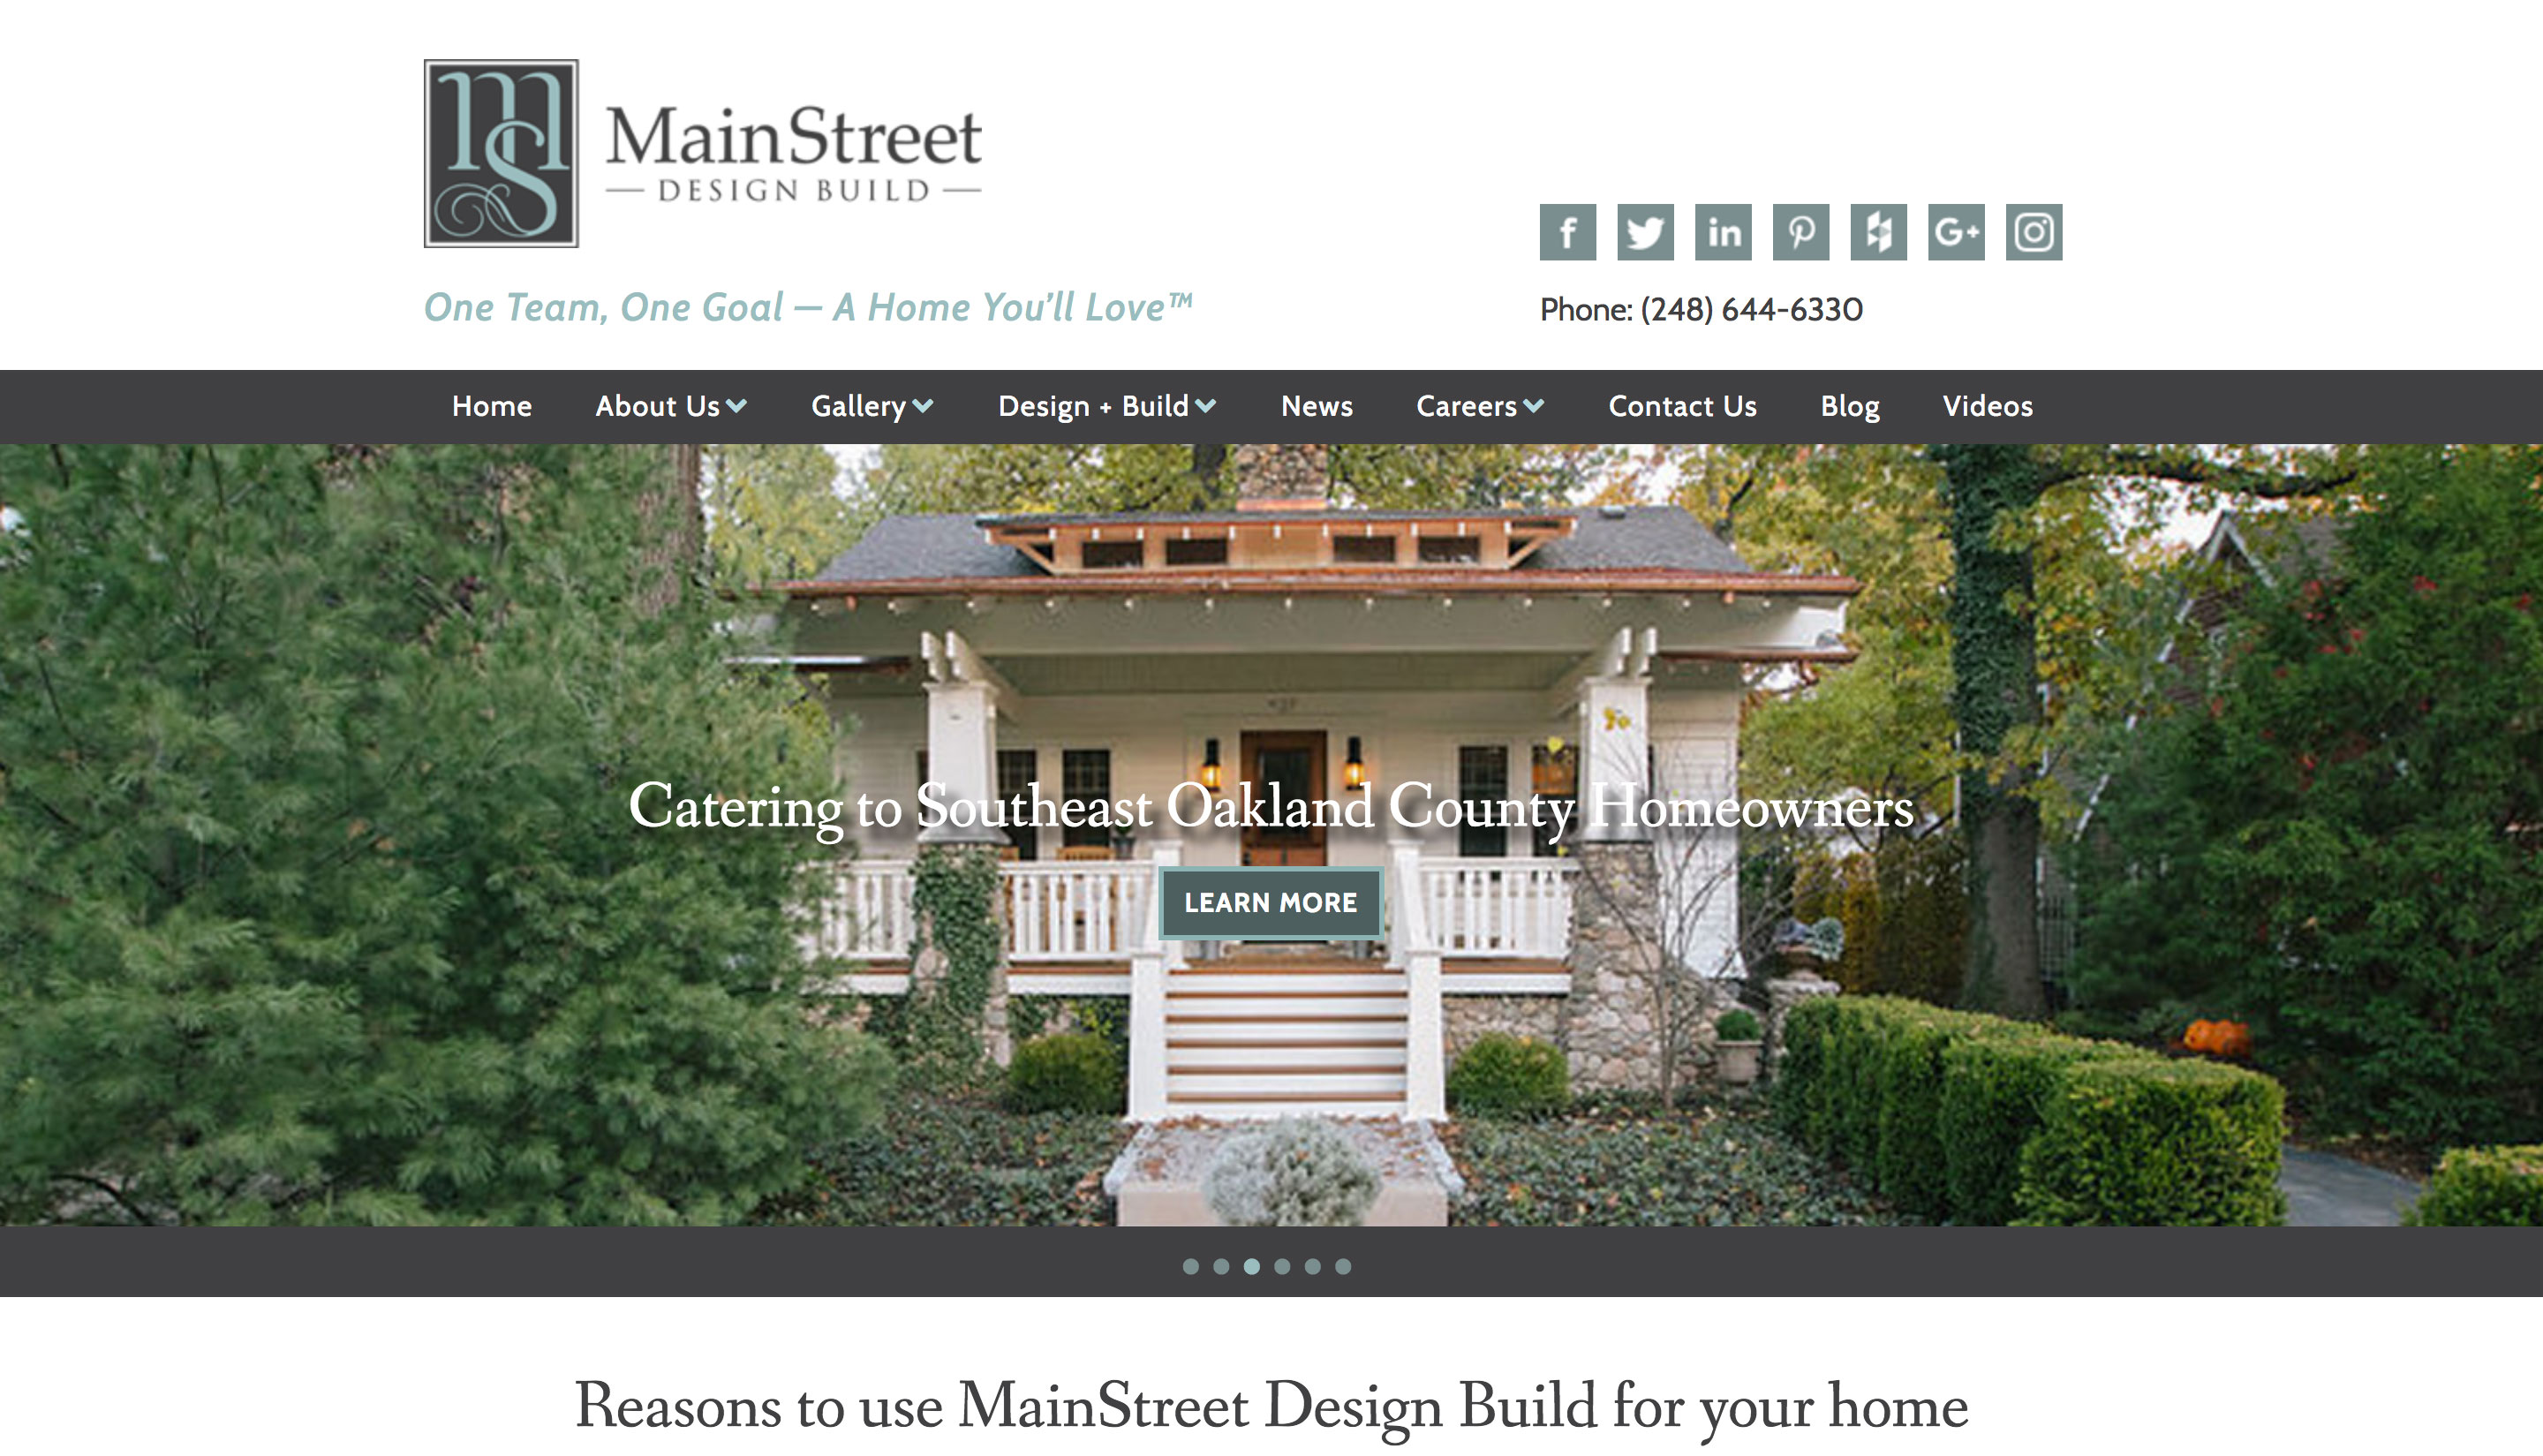 MainStreet Design Build Website